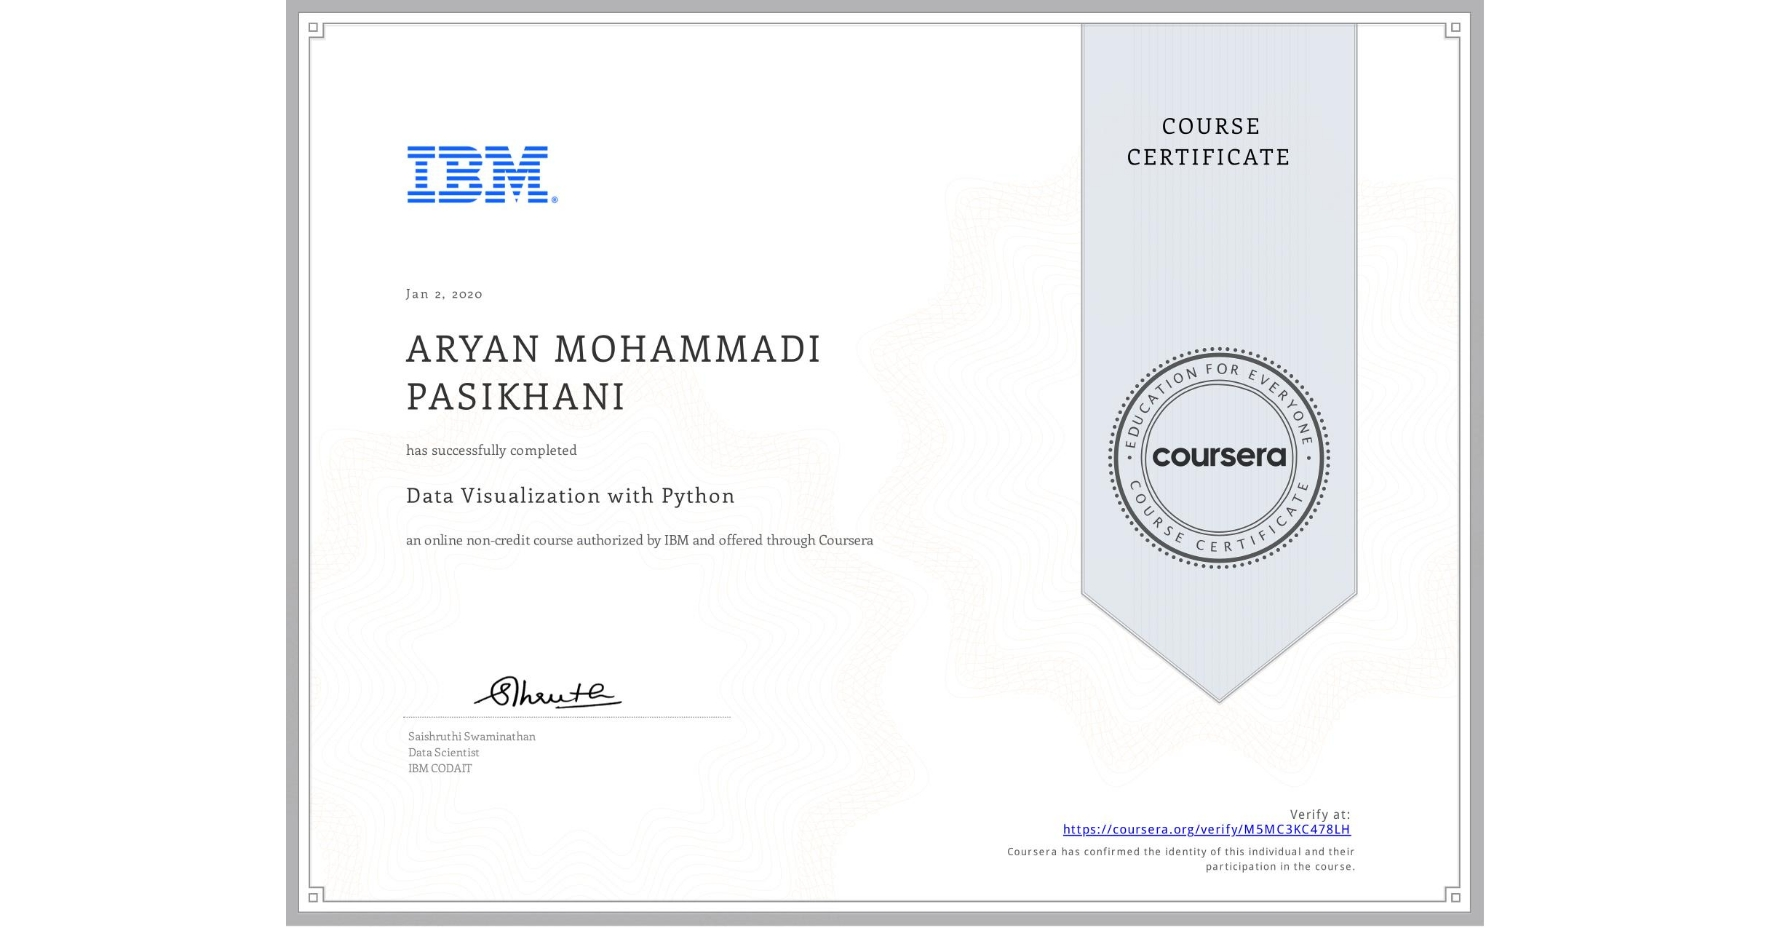 View certificate for ARYAN MOHAMMADI PASIKHANI, Data Visualization with Python, an online non-credit course authorized by IBM and offered through Coursera